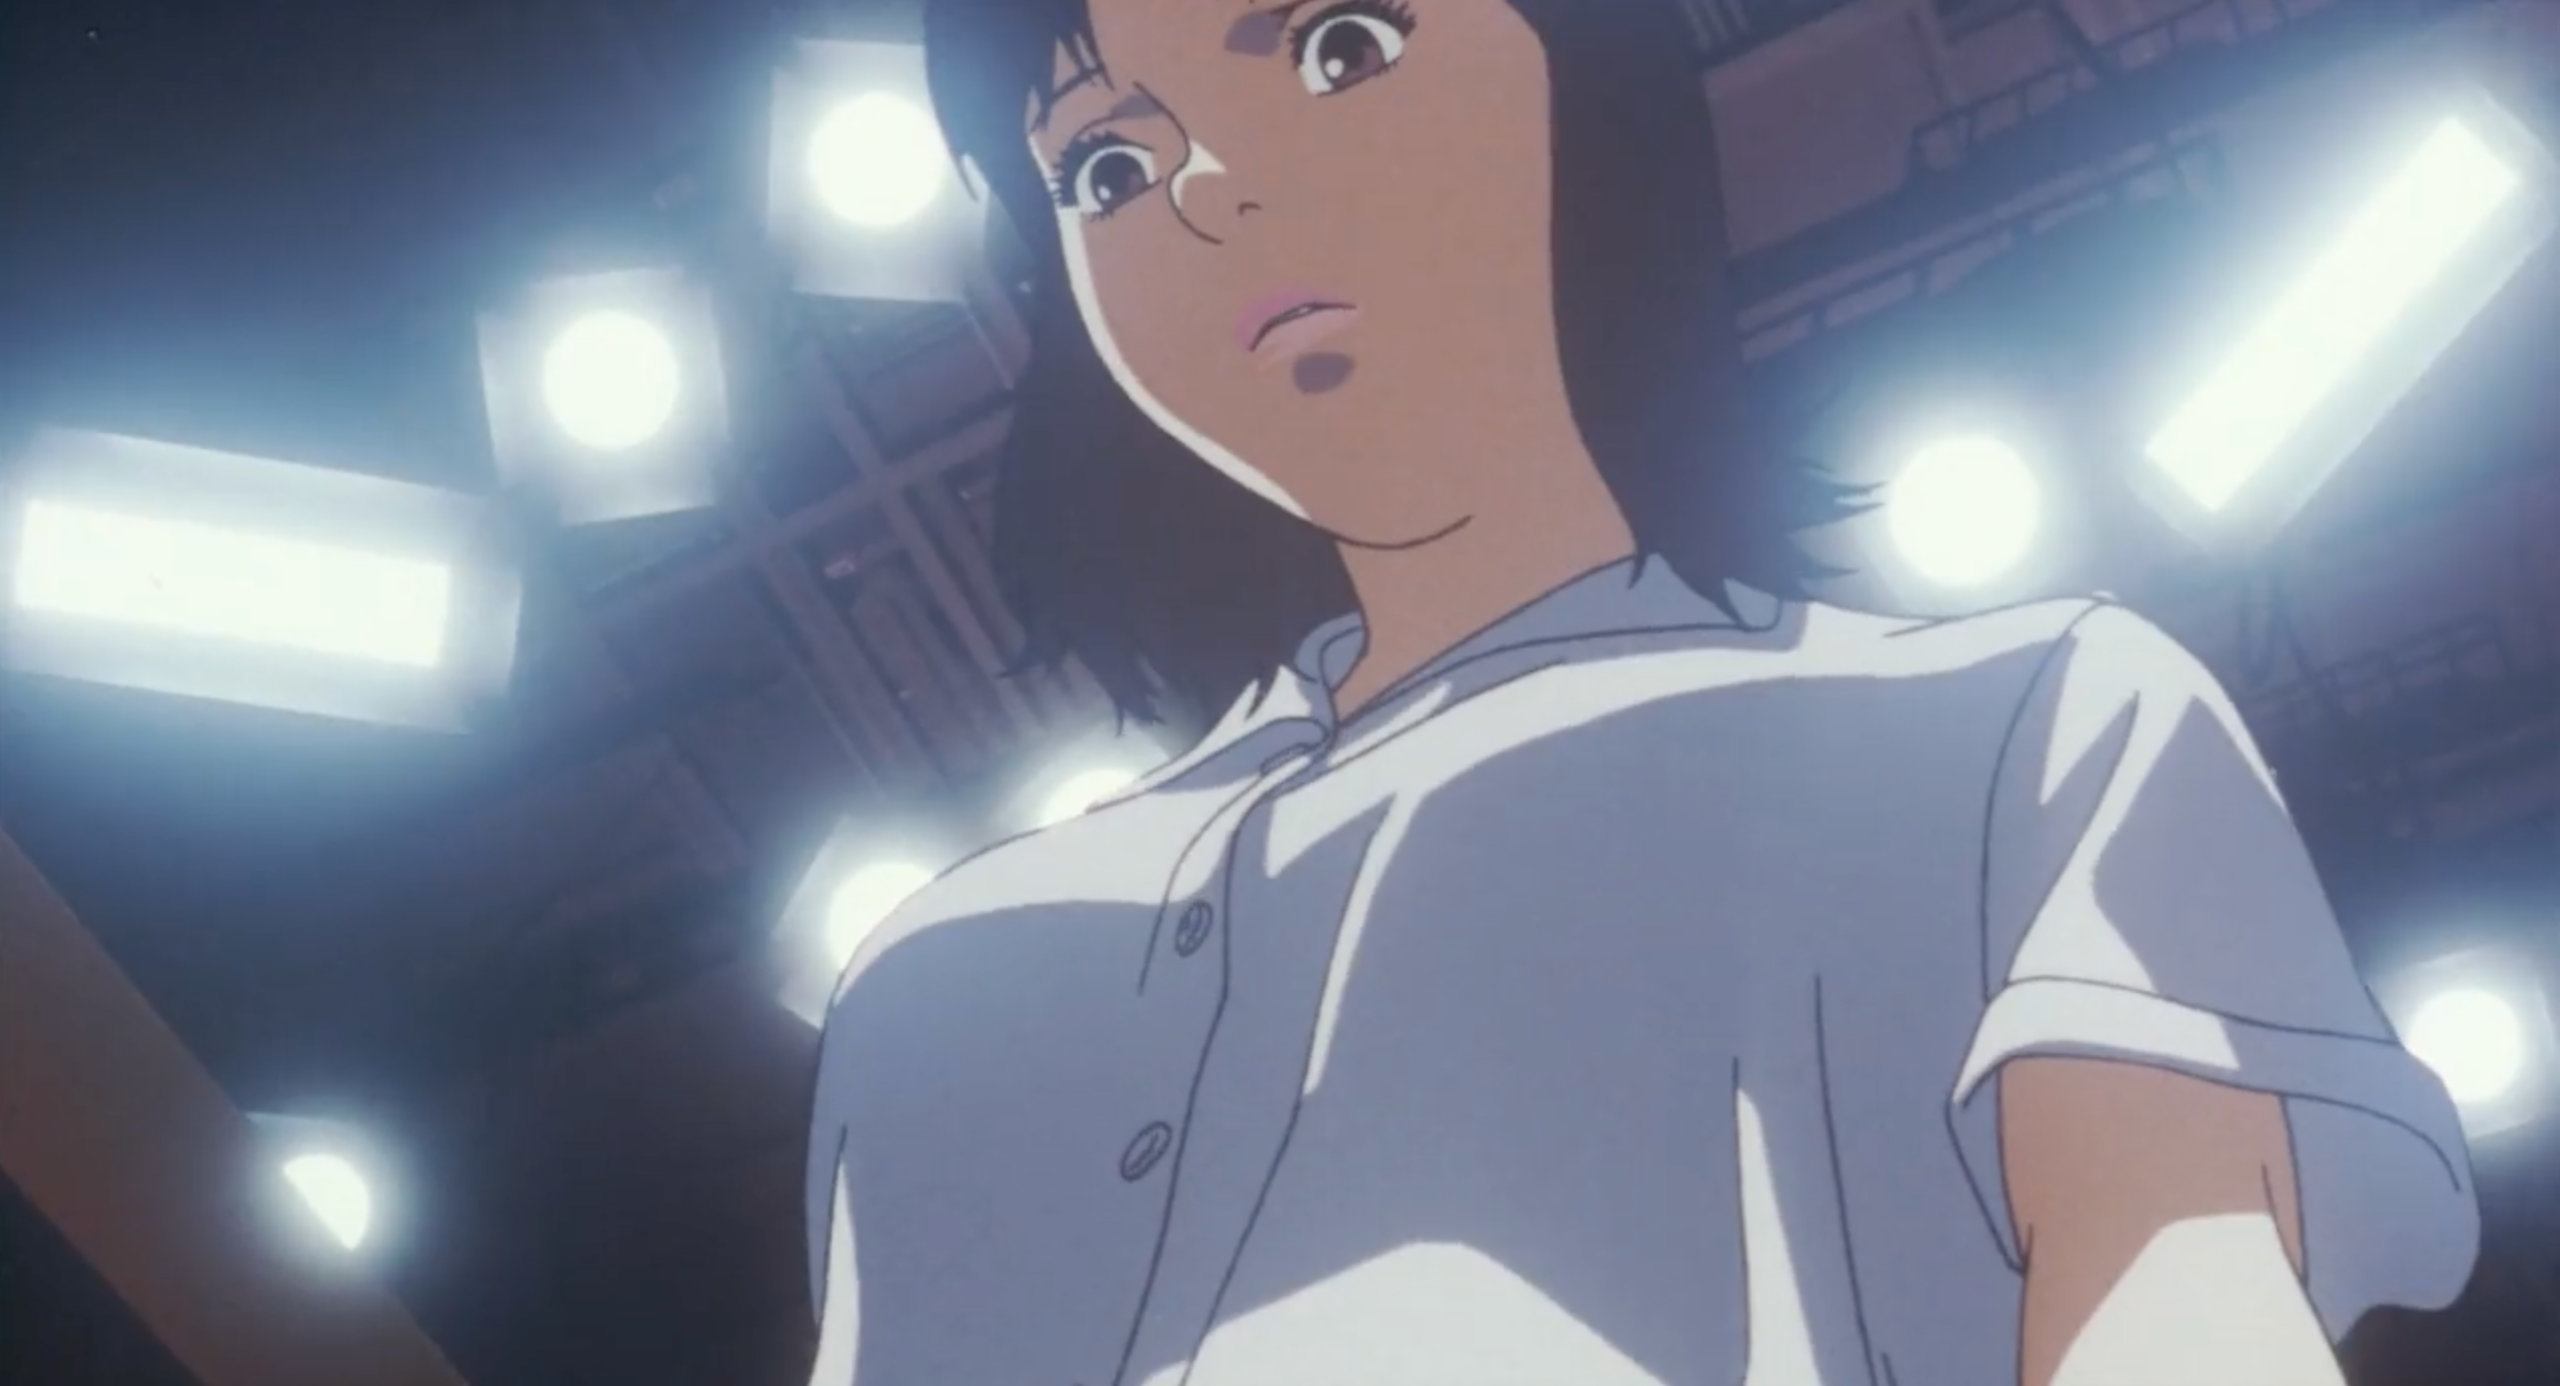 Mima breathes heavily during a Double Bind shoot in Perfect Blue